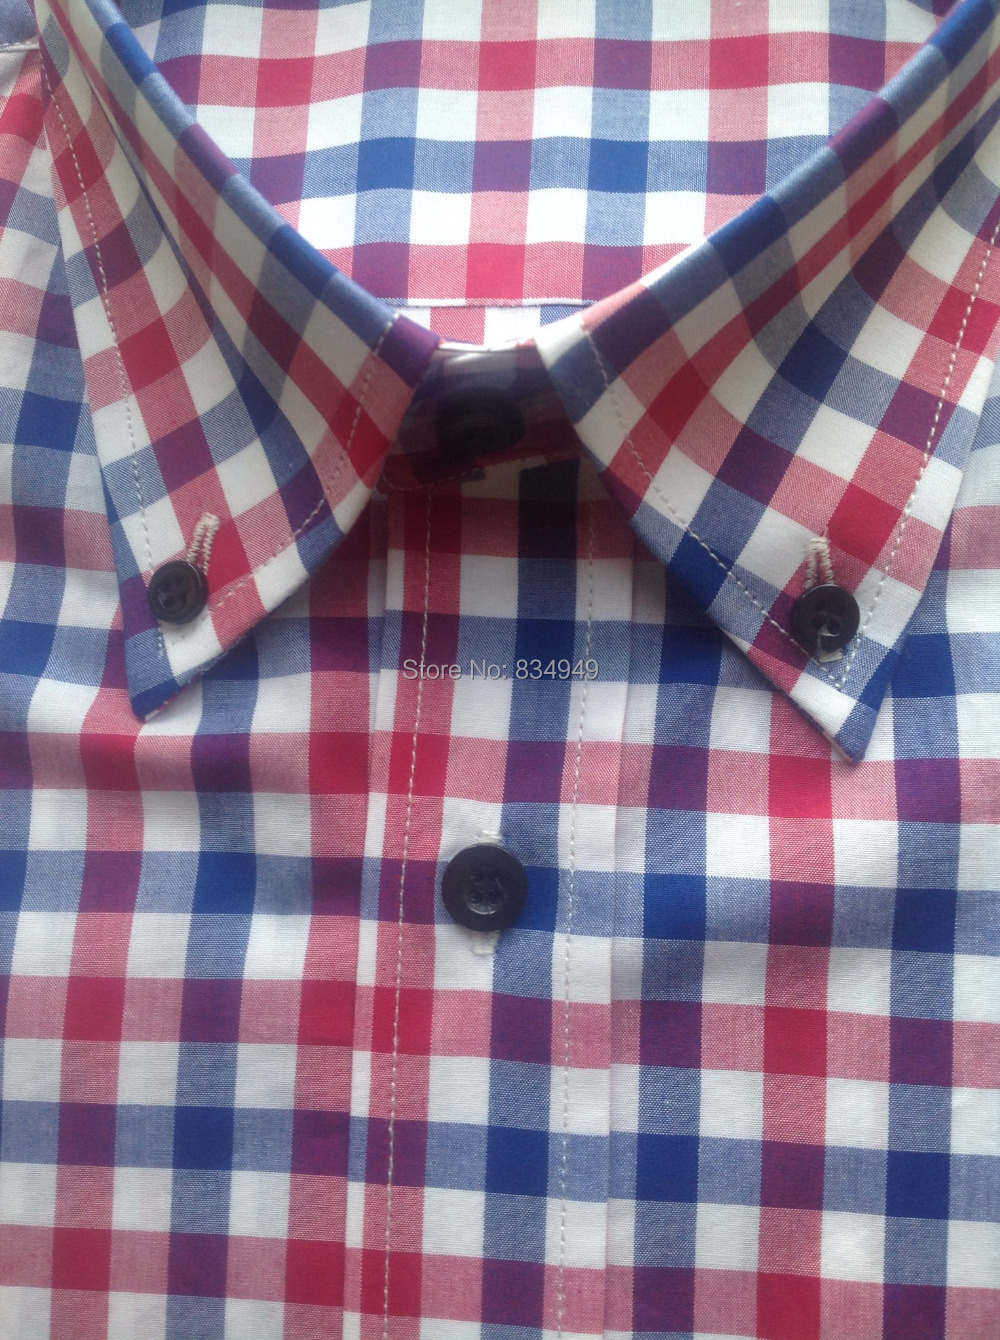 Online Get Cheap Mens Gingham Shirt -Aliexpress.com | Alibaba Group